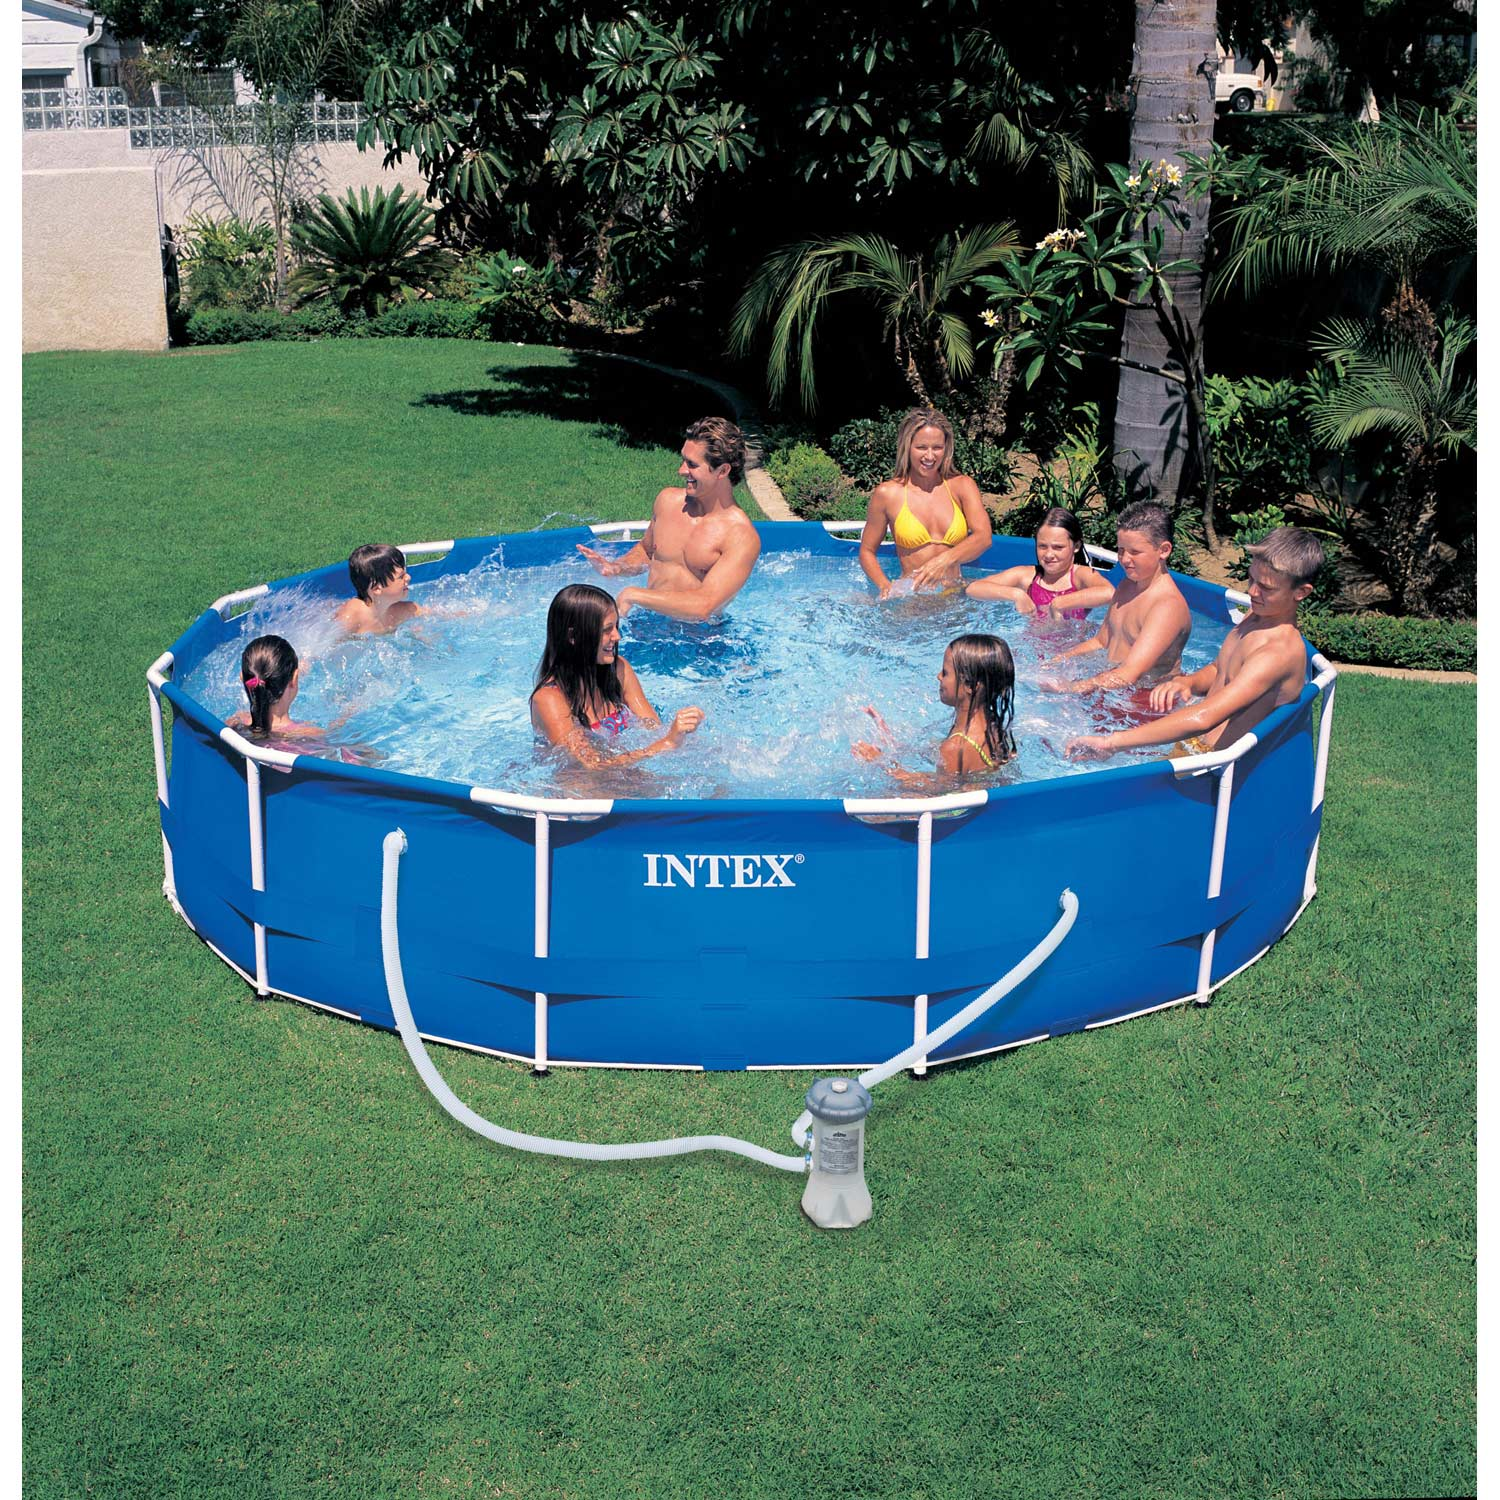 piscine hors sol autoportante tubulaire metal frame intex ForPiscine Hors Sol Intex Prix